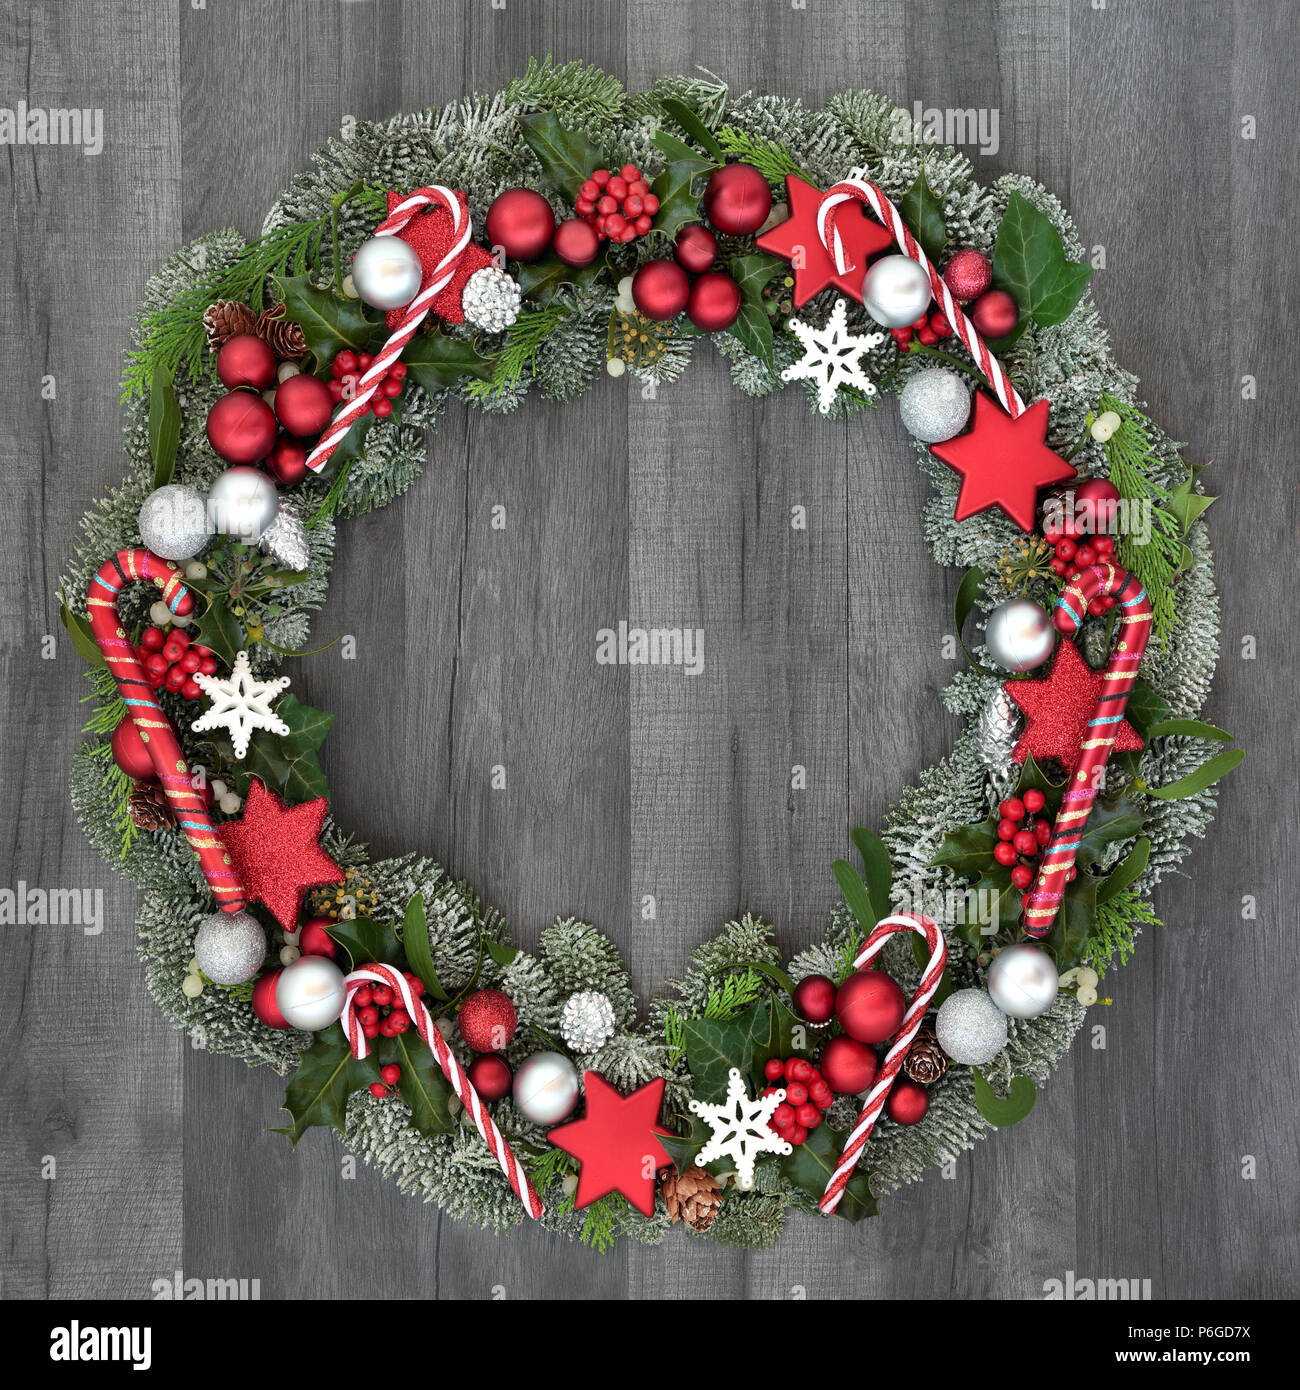 Christmas And Winter Wreath With Candy Canes And Bauble Decorations Holly Mistletoe Ivy And Spruce Fir On Rustic Grey Wood Background Stock Photo Alamy